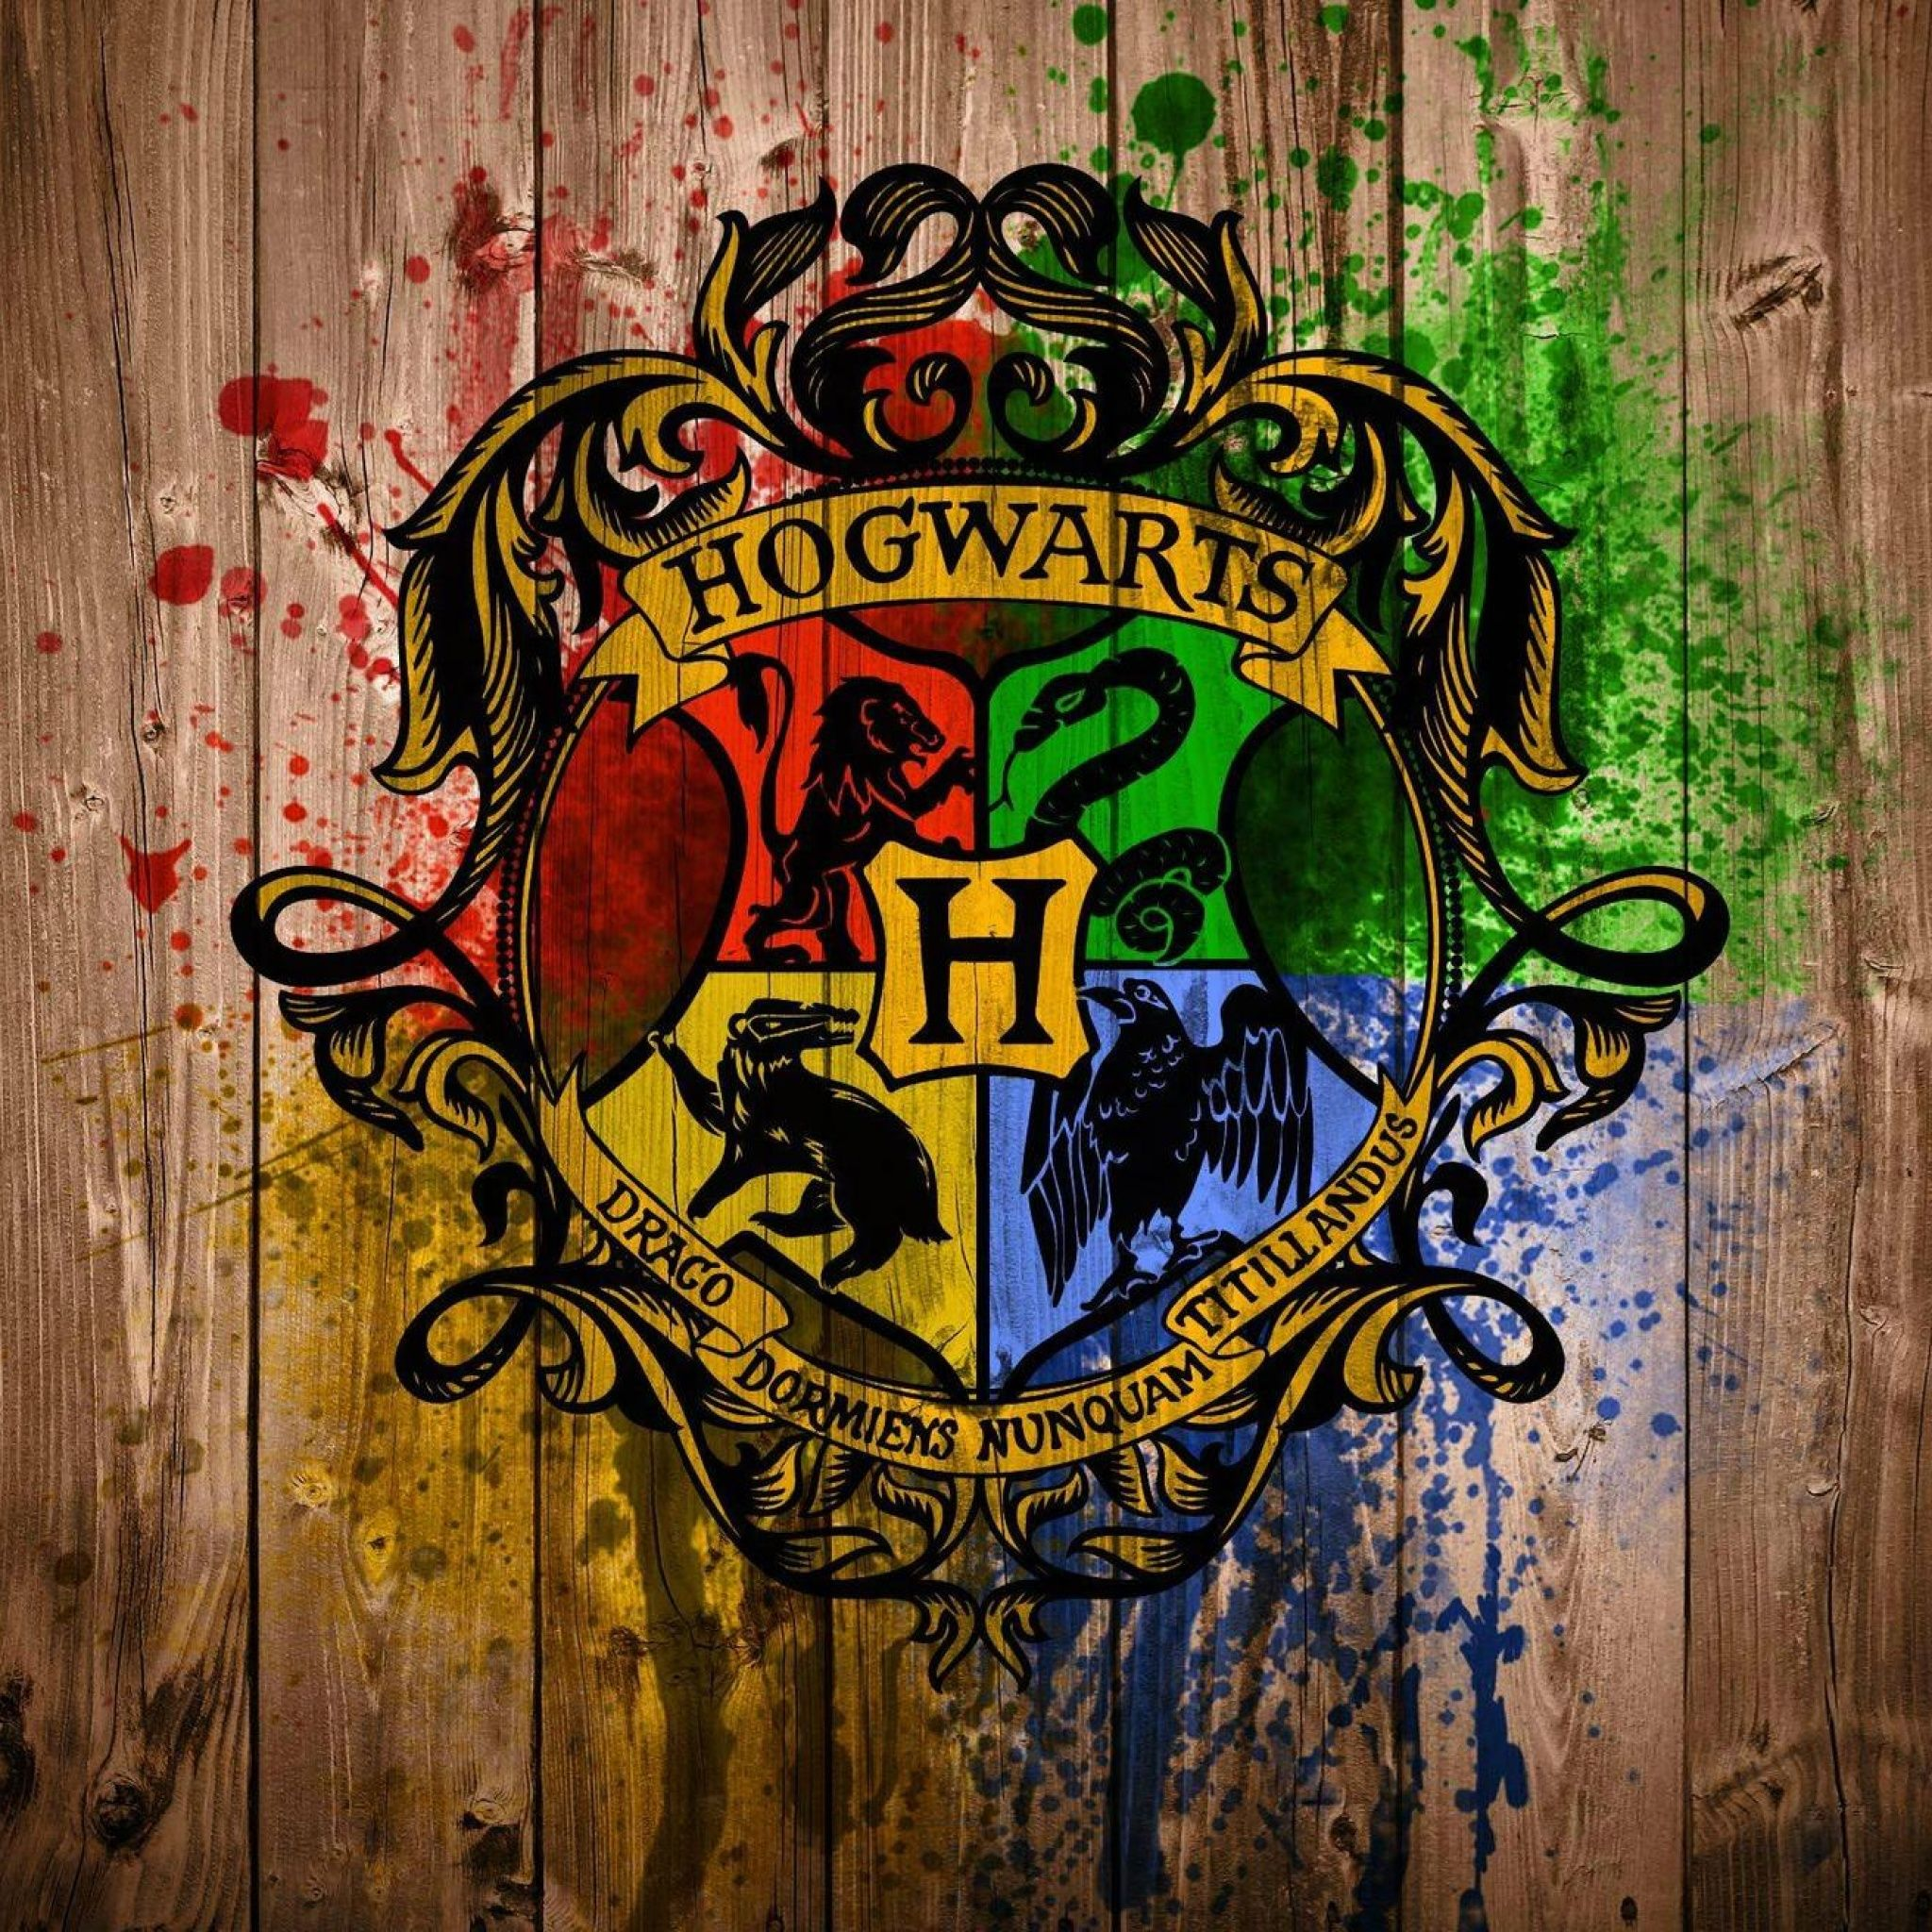 Popular Wallpaper Harry Potter Ios - 77991371207ff3db12aae3d9dc2d66b3  Trends_77298.jpg